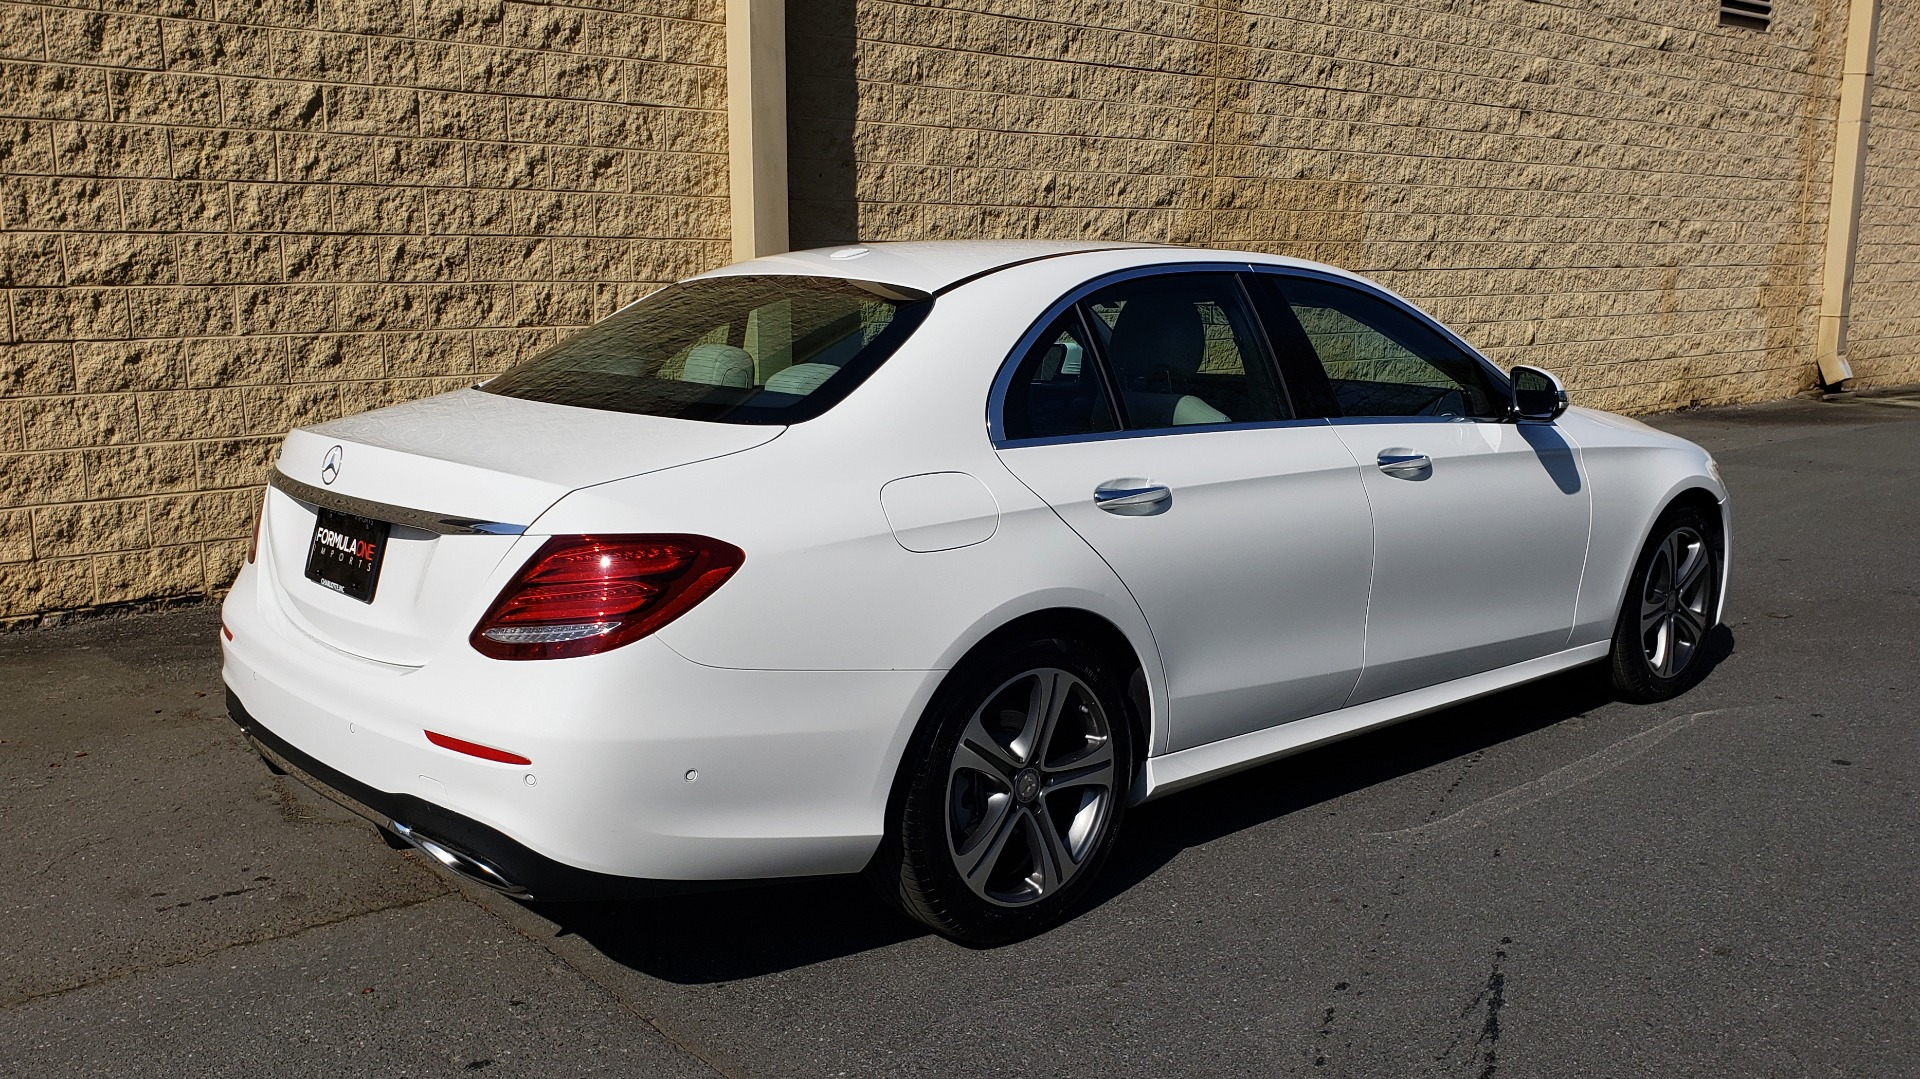 Used 2017 Mercedes-Benz E-Class E 300 PREMIUM / RWD / NAV / SNF / PARKING PILOT / REARVIEW / BURMESTER for sale Sold at Formula Imports in Charlotte NC 28227 6